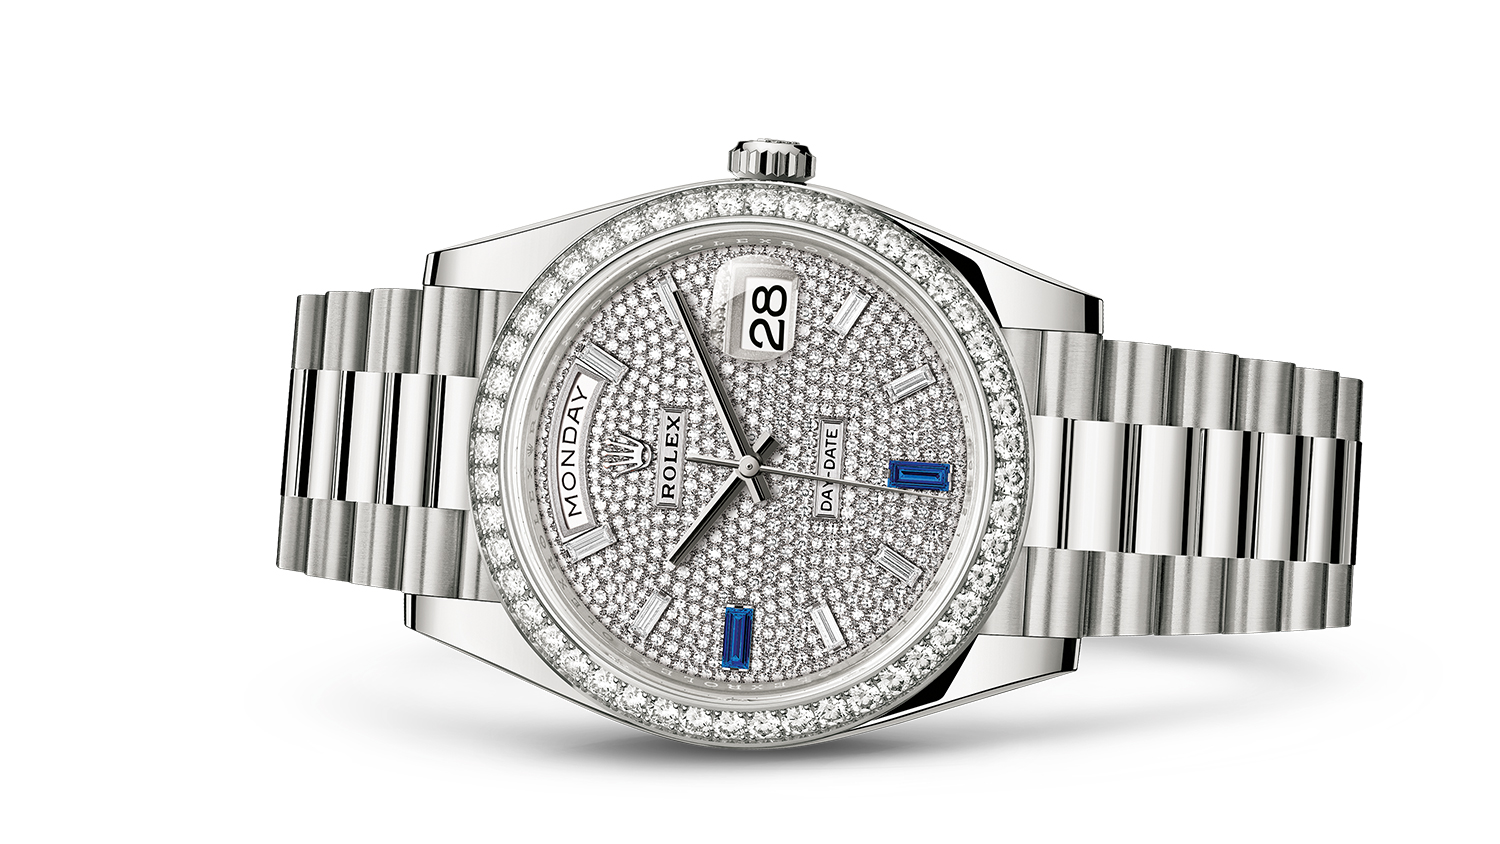 DAY-DATE 40 Oyster, 40 mm, white gold and diamonds